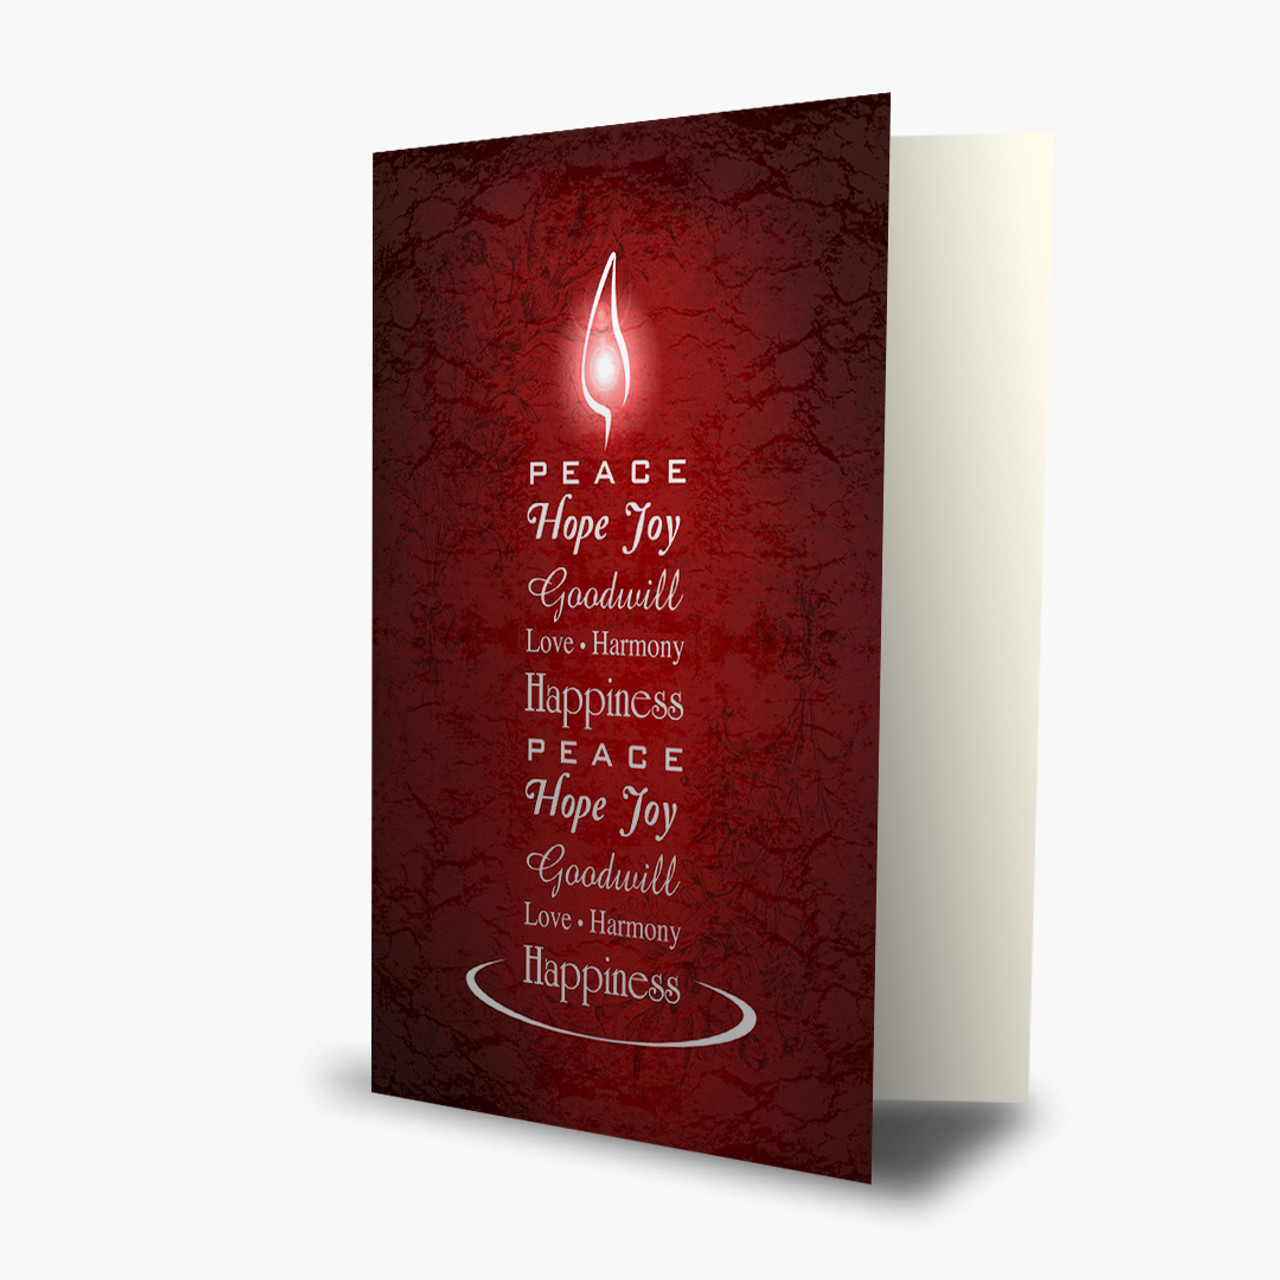 Candlelit Greetings Christmas Card